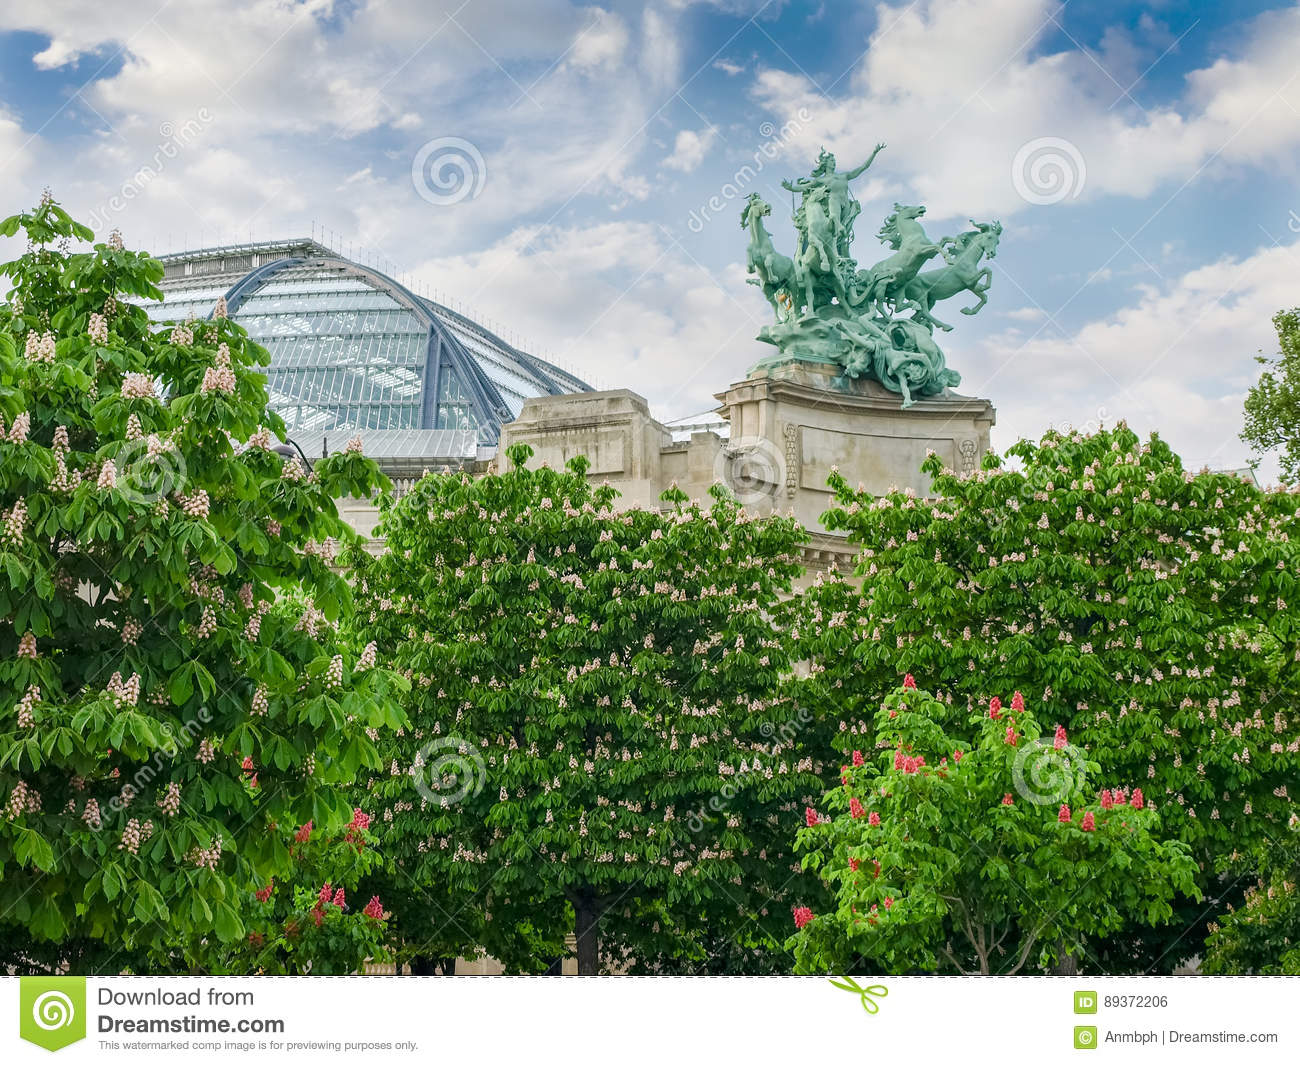 Allegorical statue and vaulted roof of Great Palace in Paris